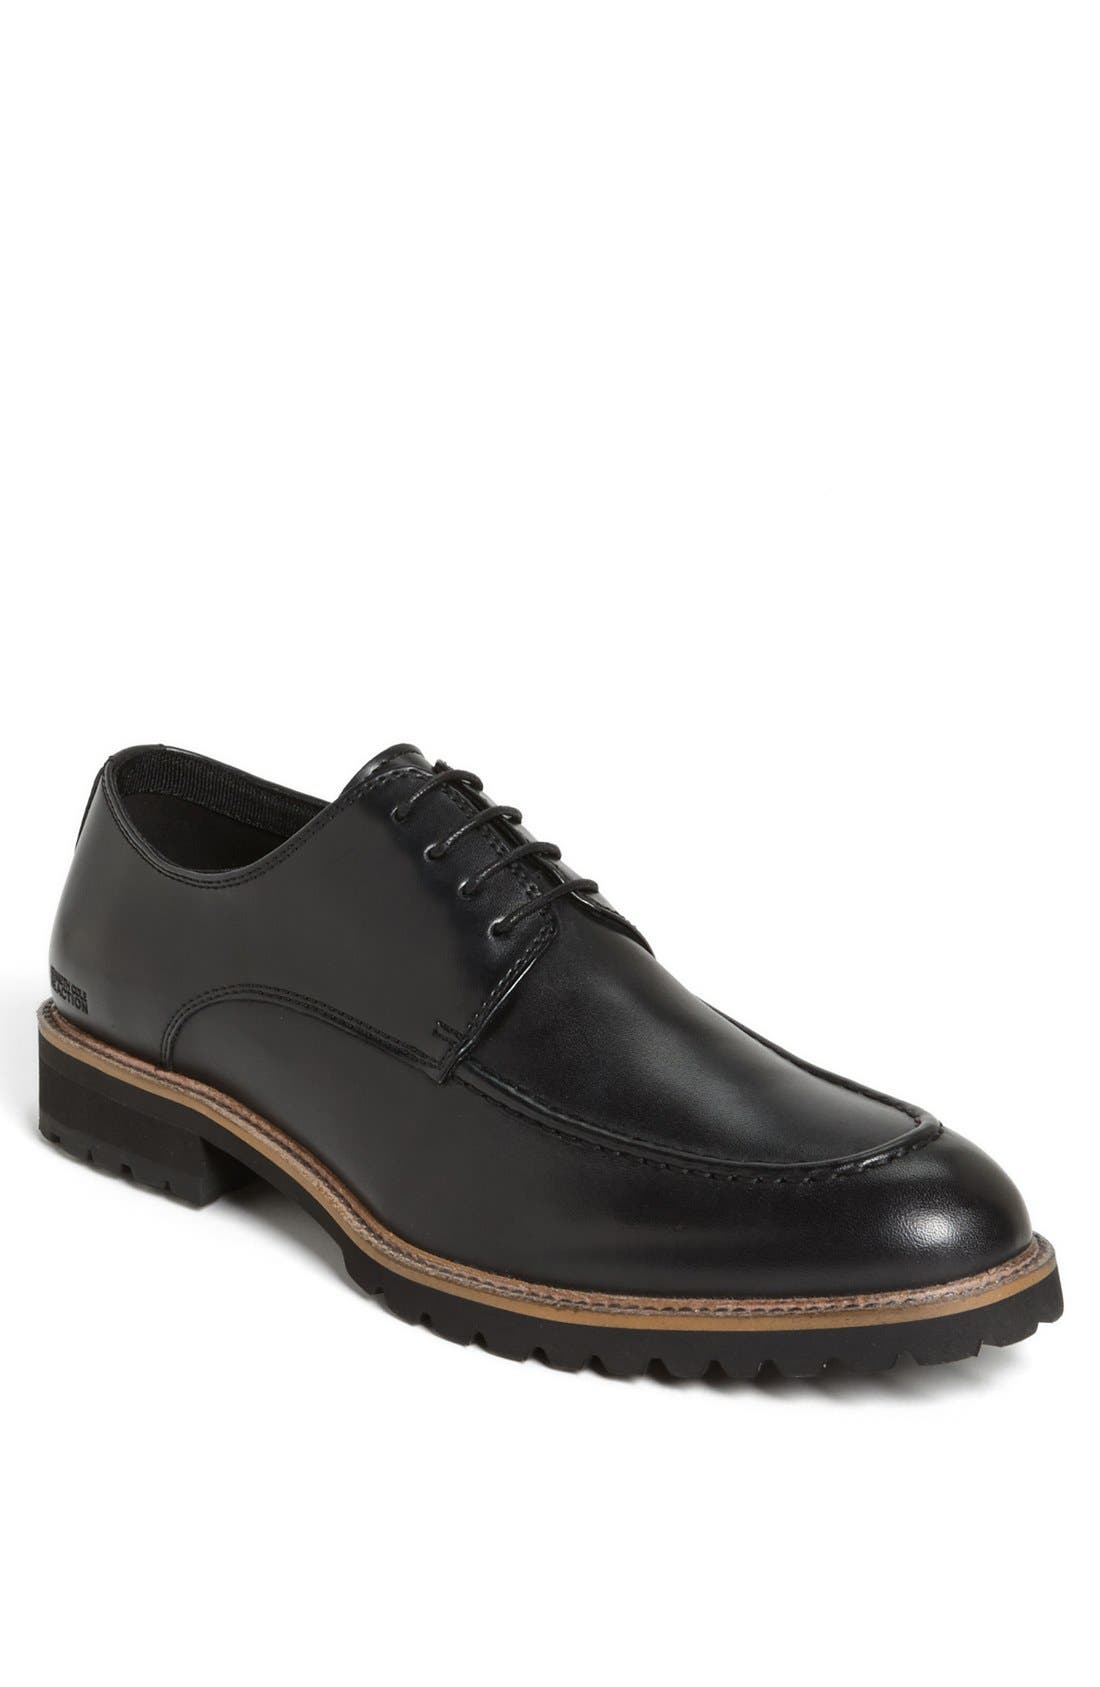 Alternate Image 1 Selected - Kenneth Cole Reaction 'Act Now' Moc Toe Derby